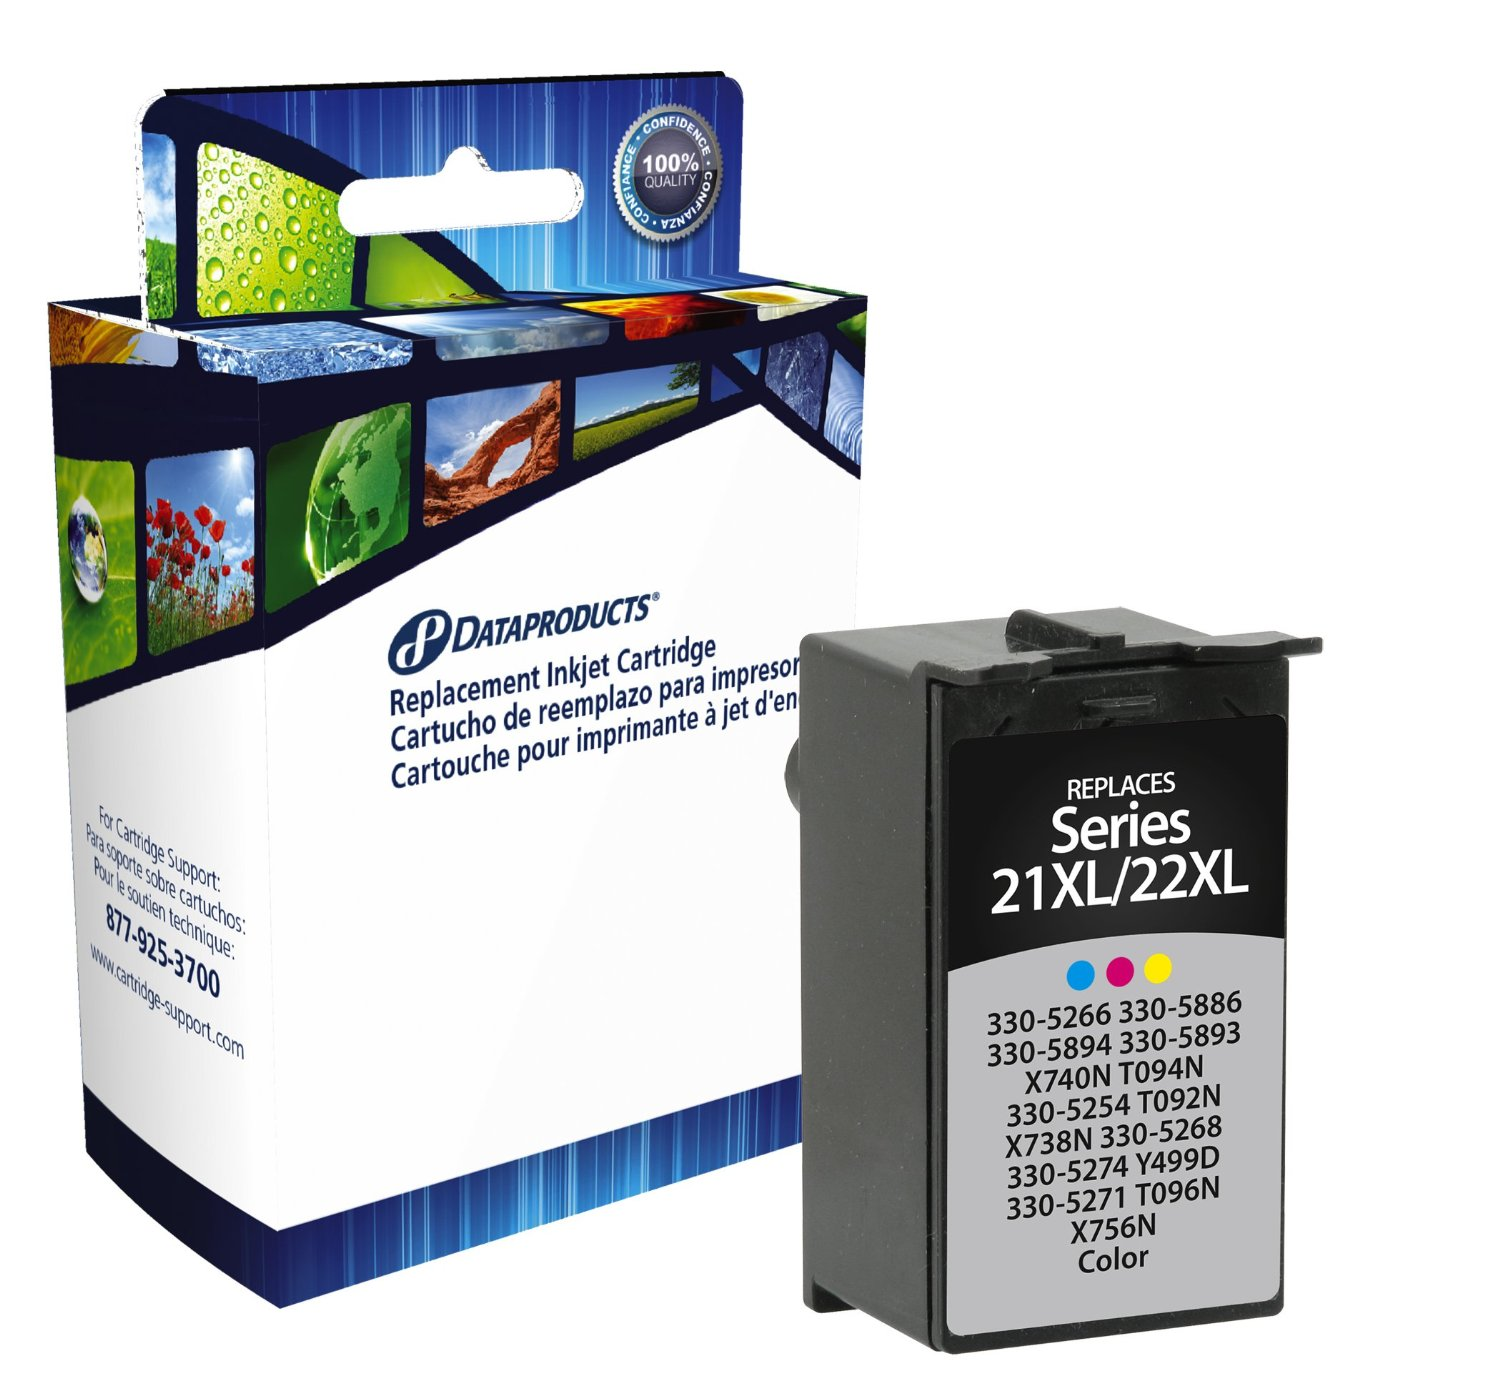 Dataproducts DPCD22CXLS High Yield Remanufactured Inkjet Cartridge Replacement for Dell 21XL/22XL (C